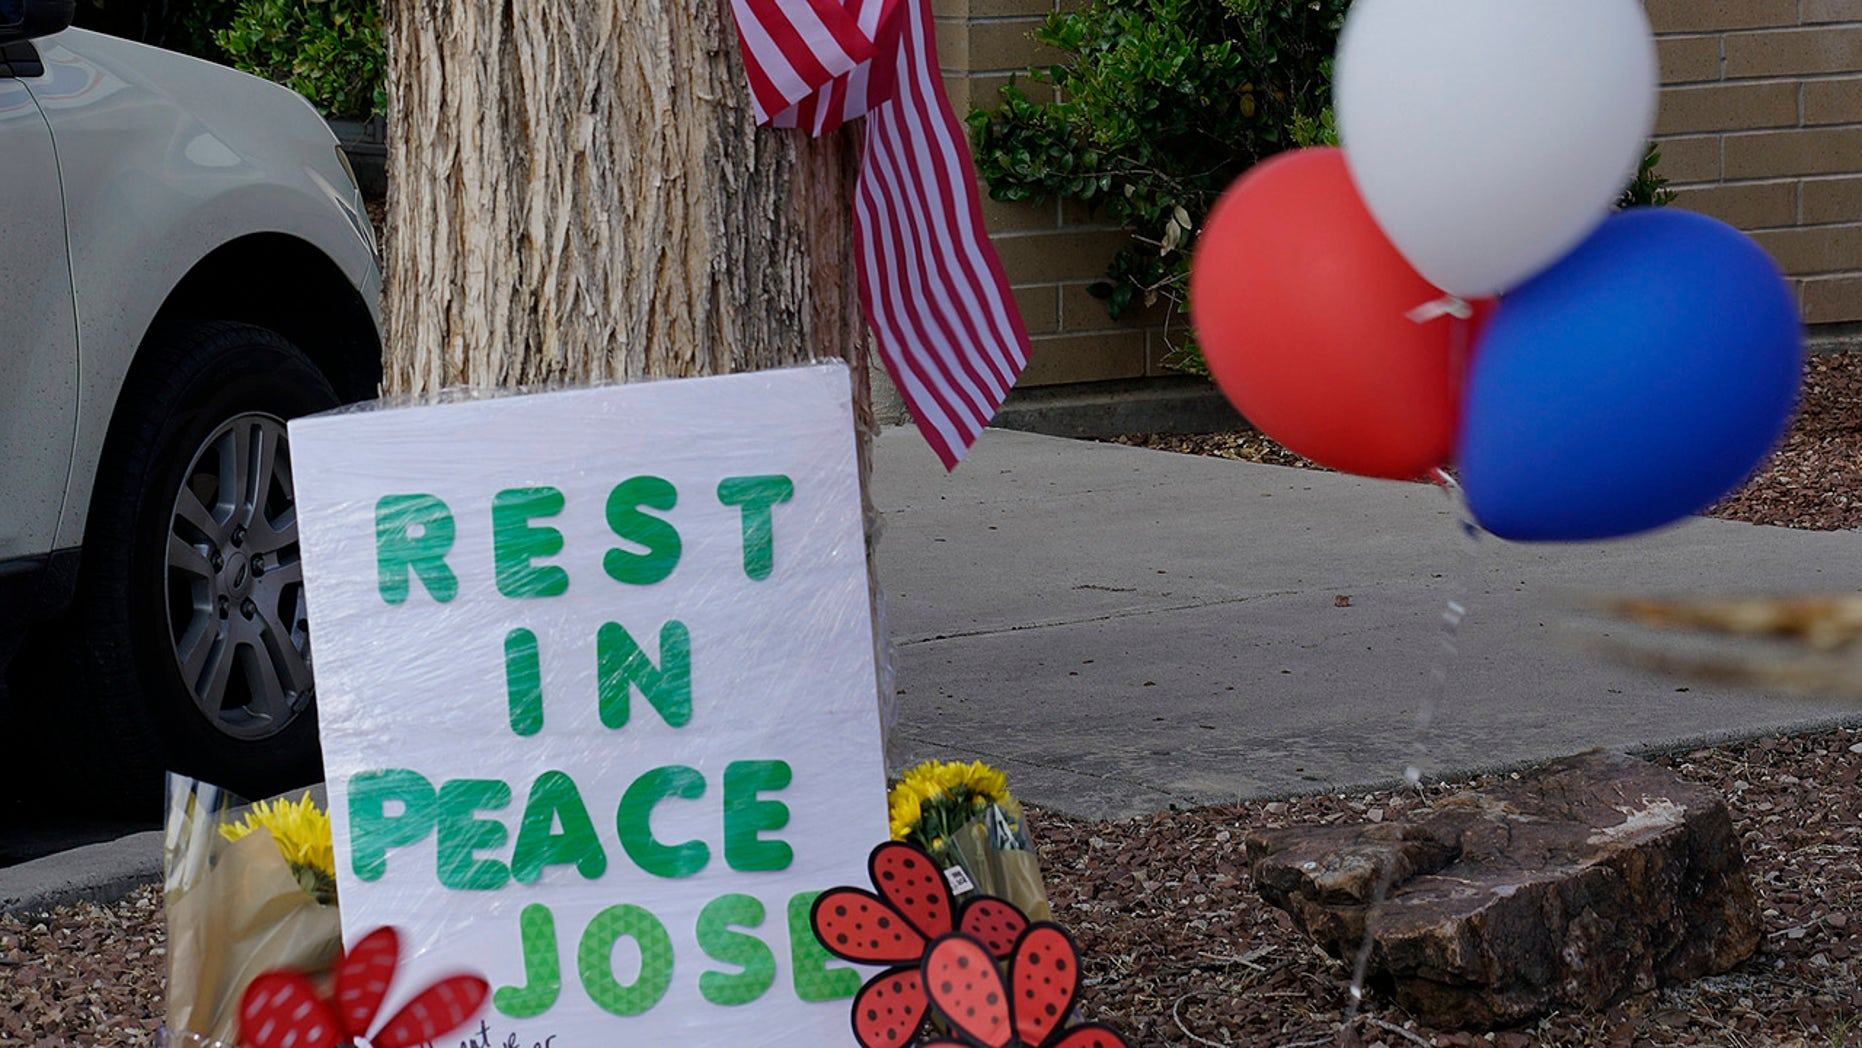 A makeshift memorial in honor of the mail carrier fatally shot Monday in Southwest Albuquerque, New Mexico is seen in front of the Five Points Postal Station, photographed on April 23, 2019. (Associated Press)